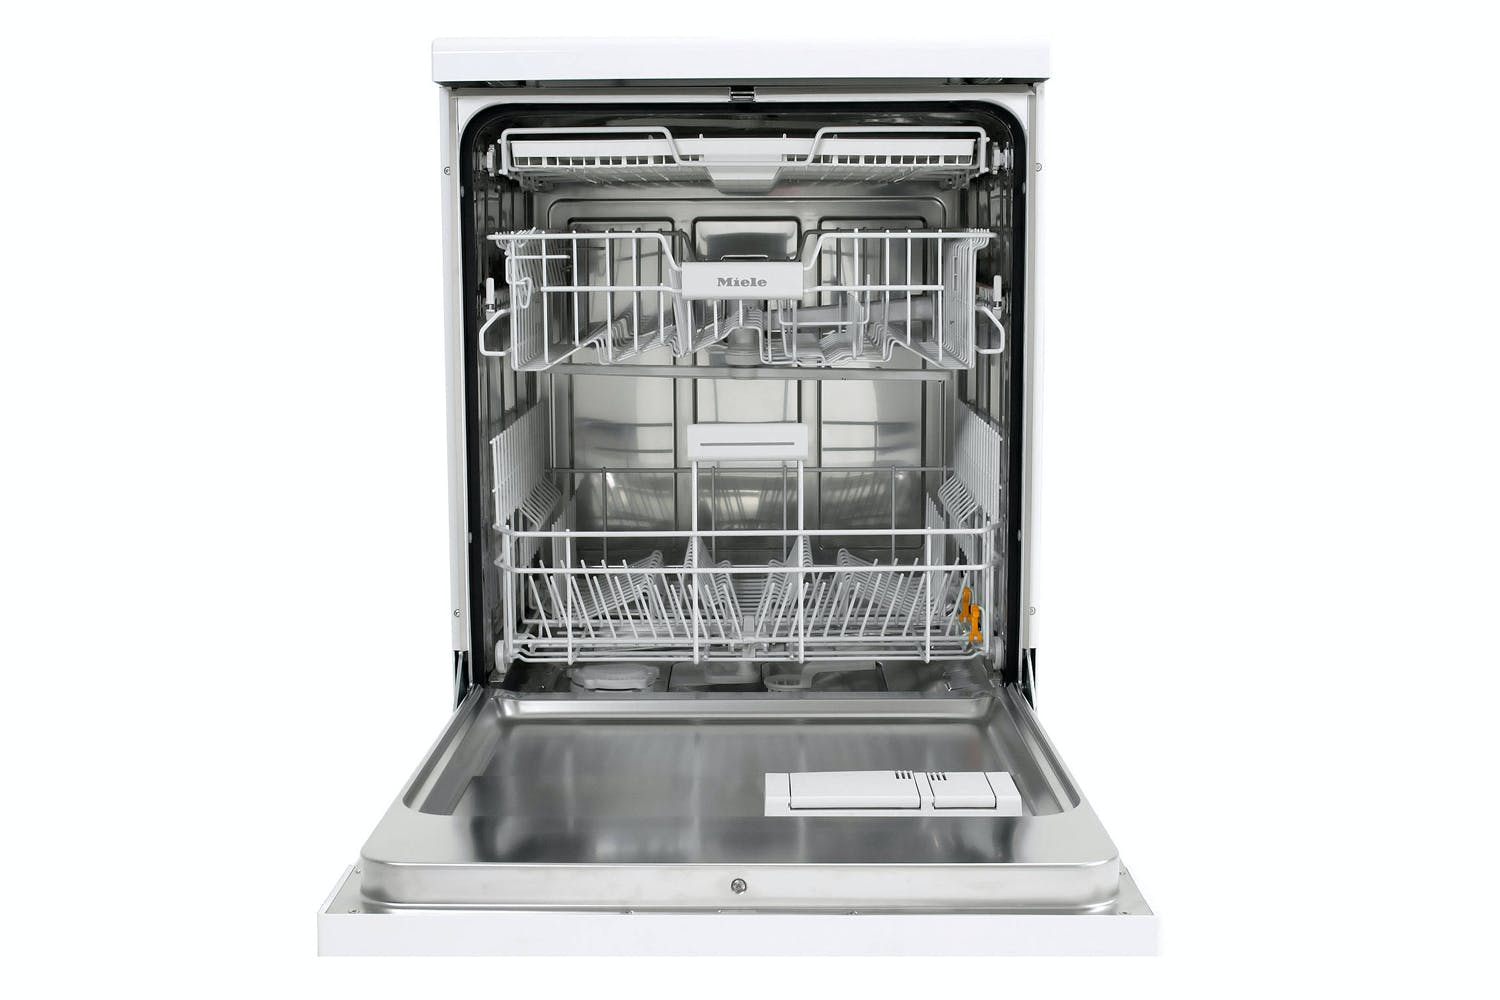 Miele G 4940 SCi Jubilee  Semi-integrated dishwasher   with 3D cutlery tray for maximum convenience at an attractive entry level price